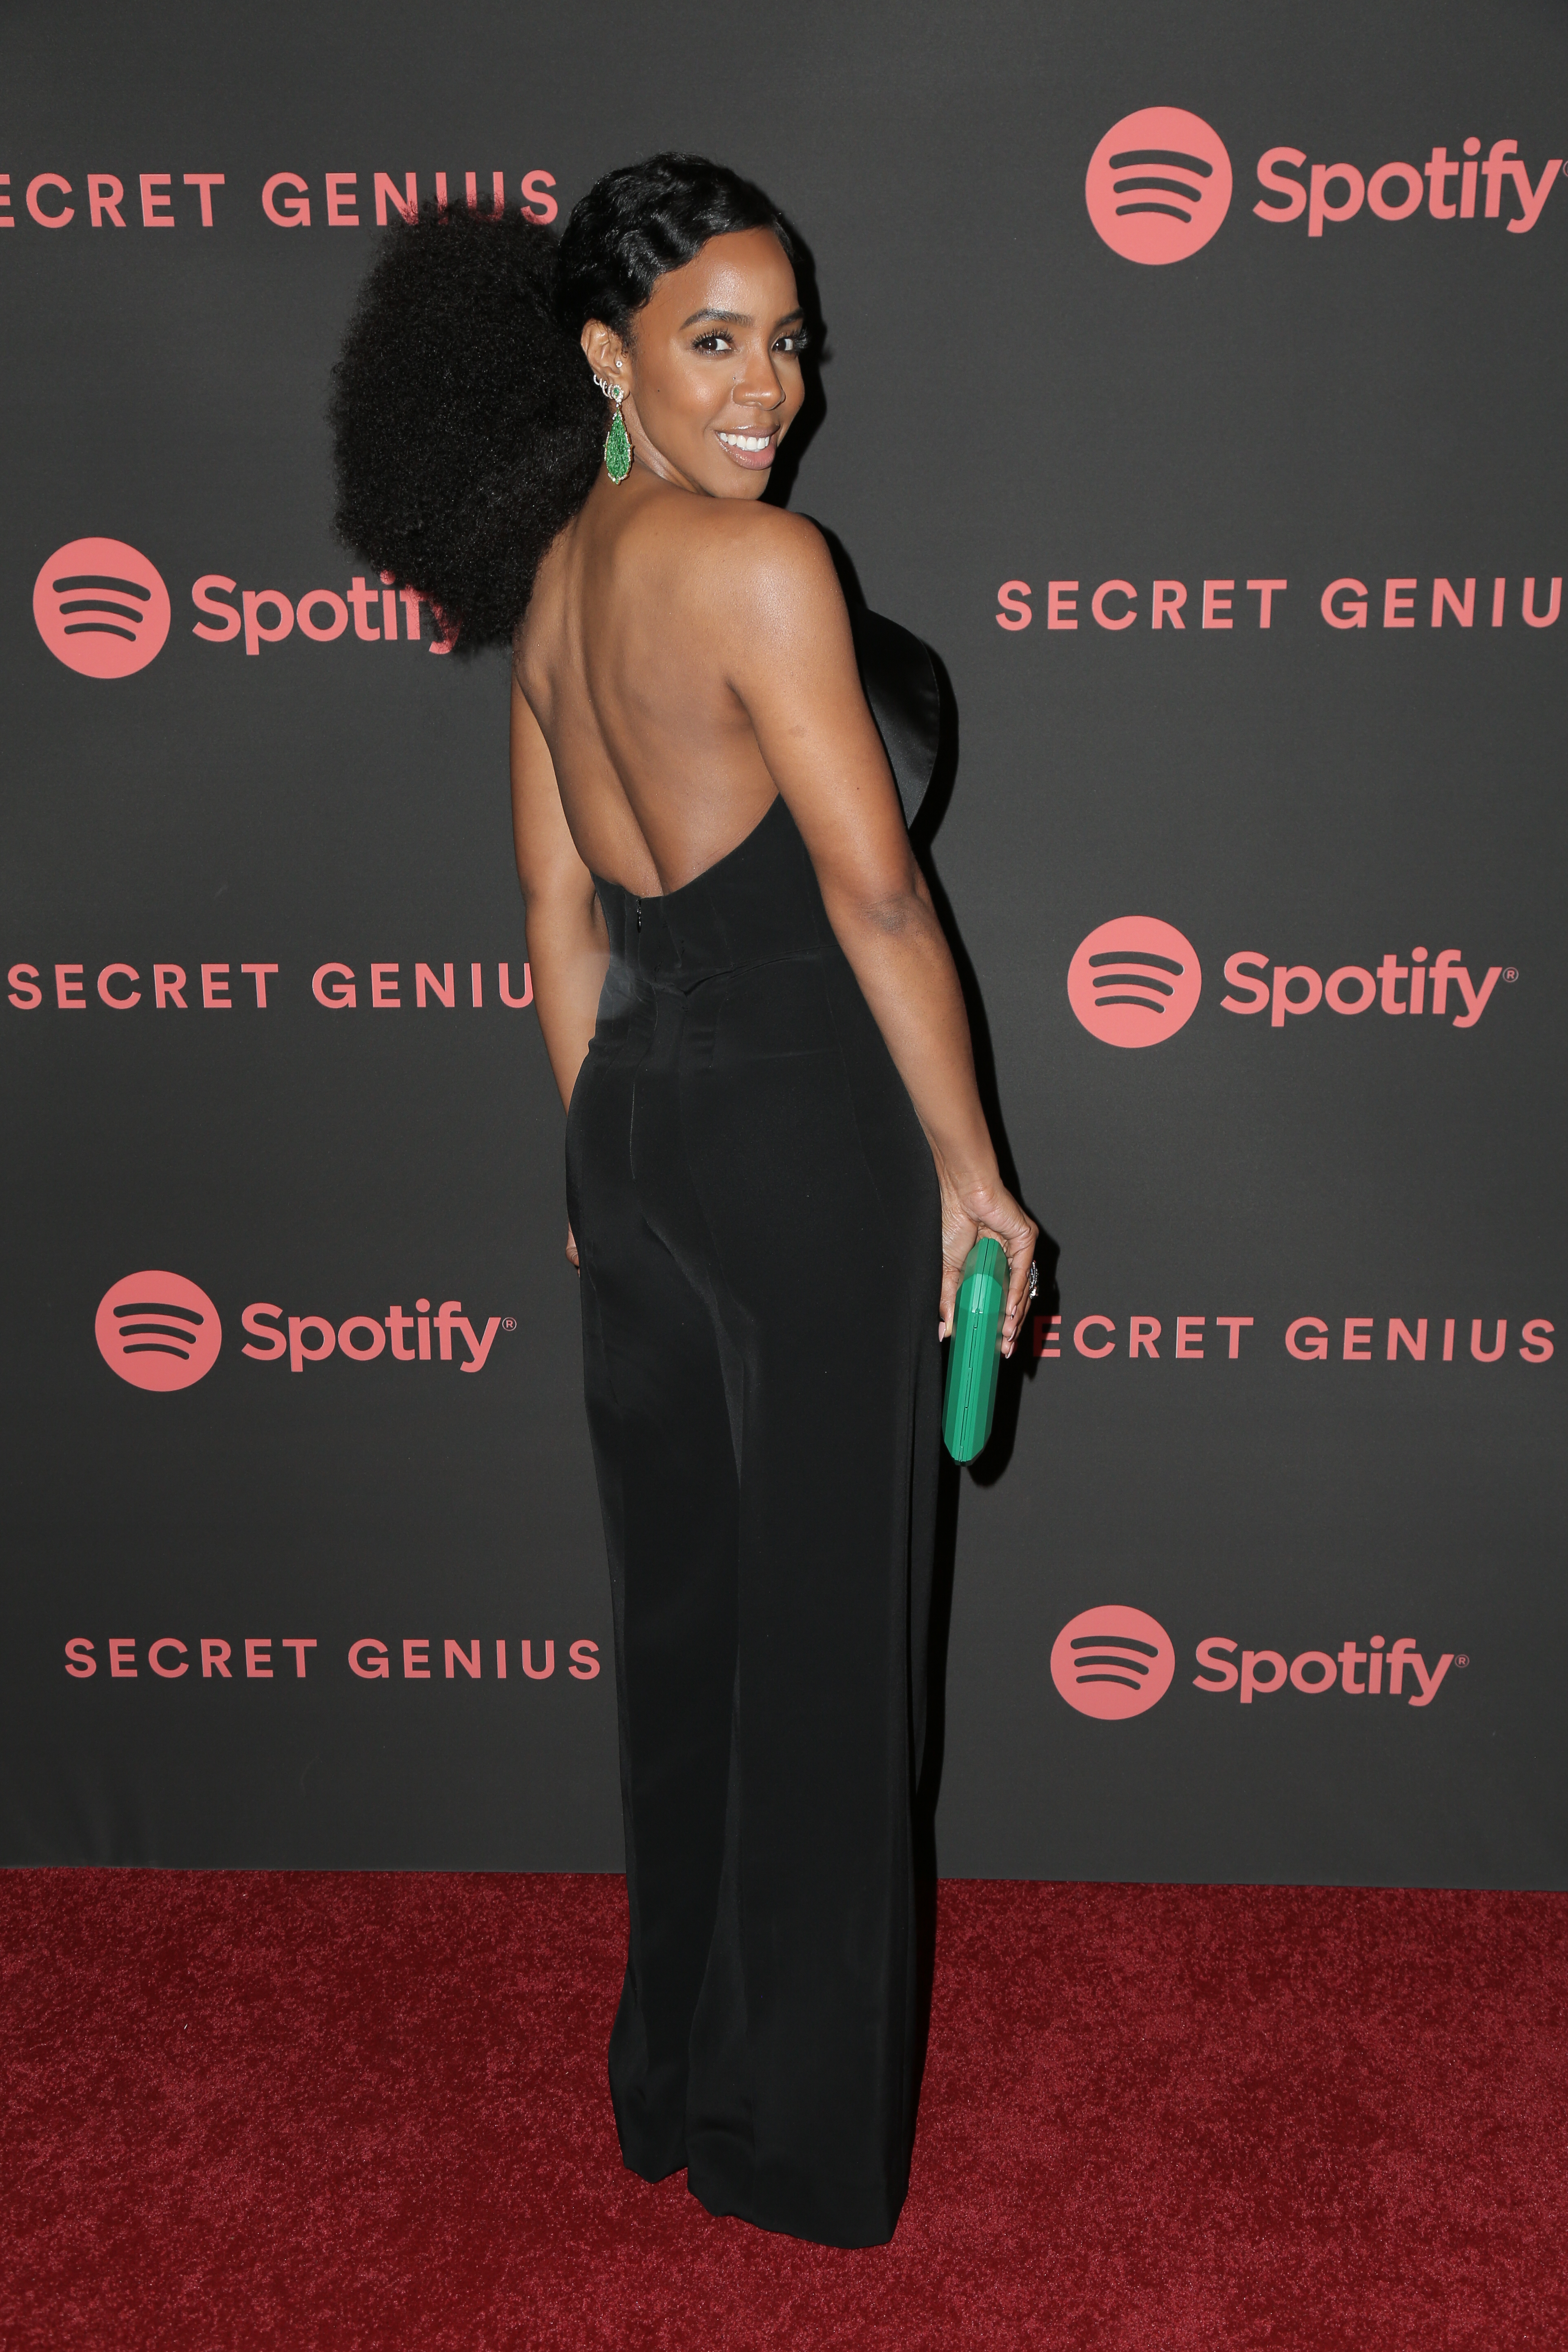 Kelly Rowland at the 2nd Annual Secret Genius Awards